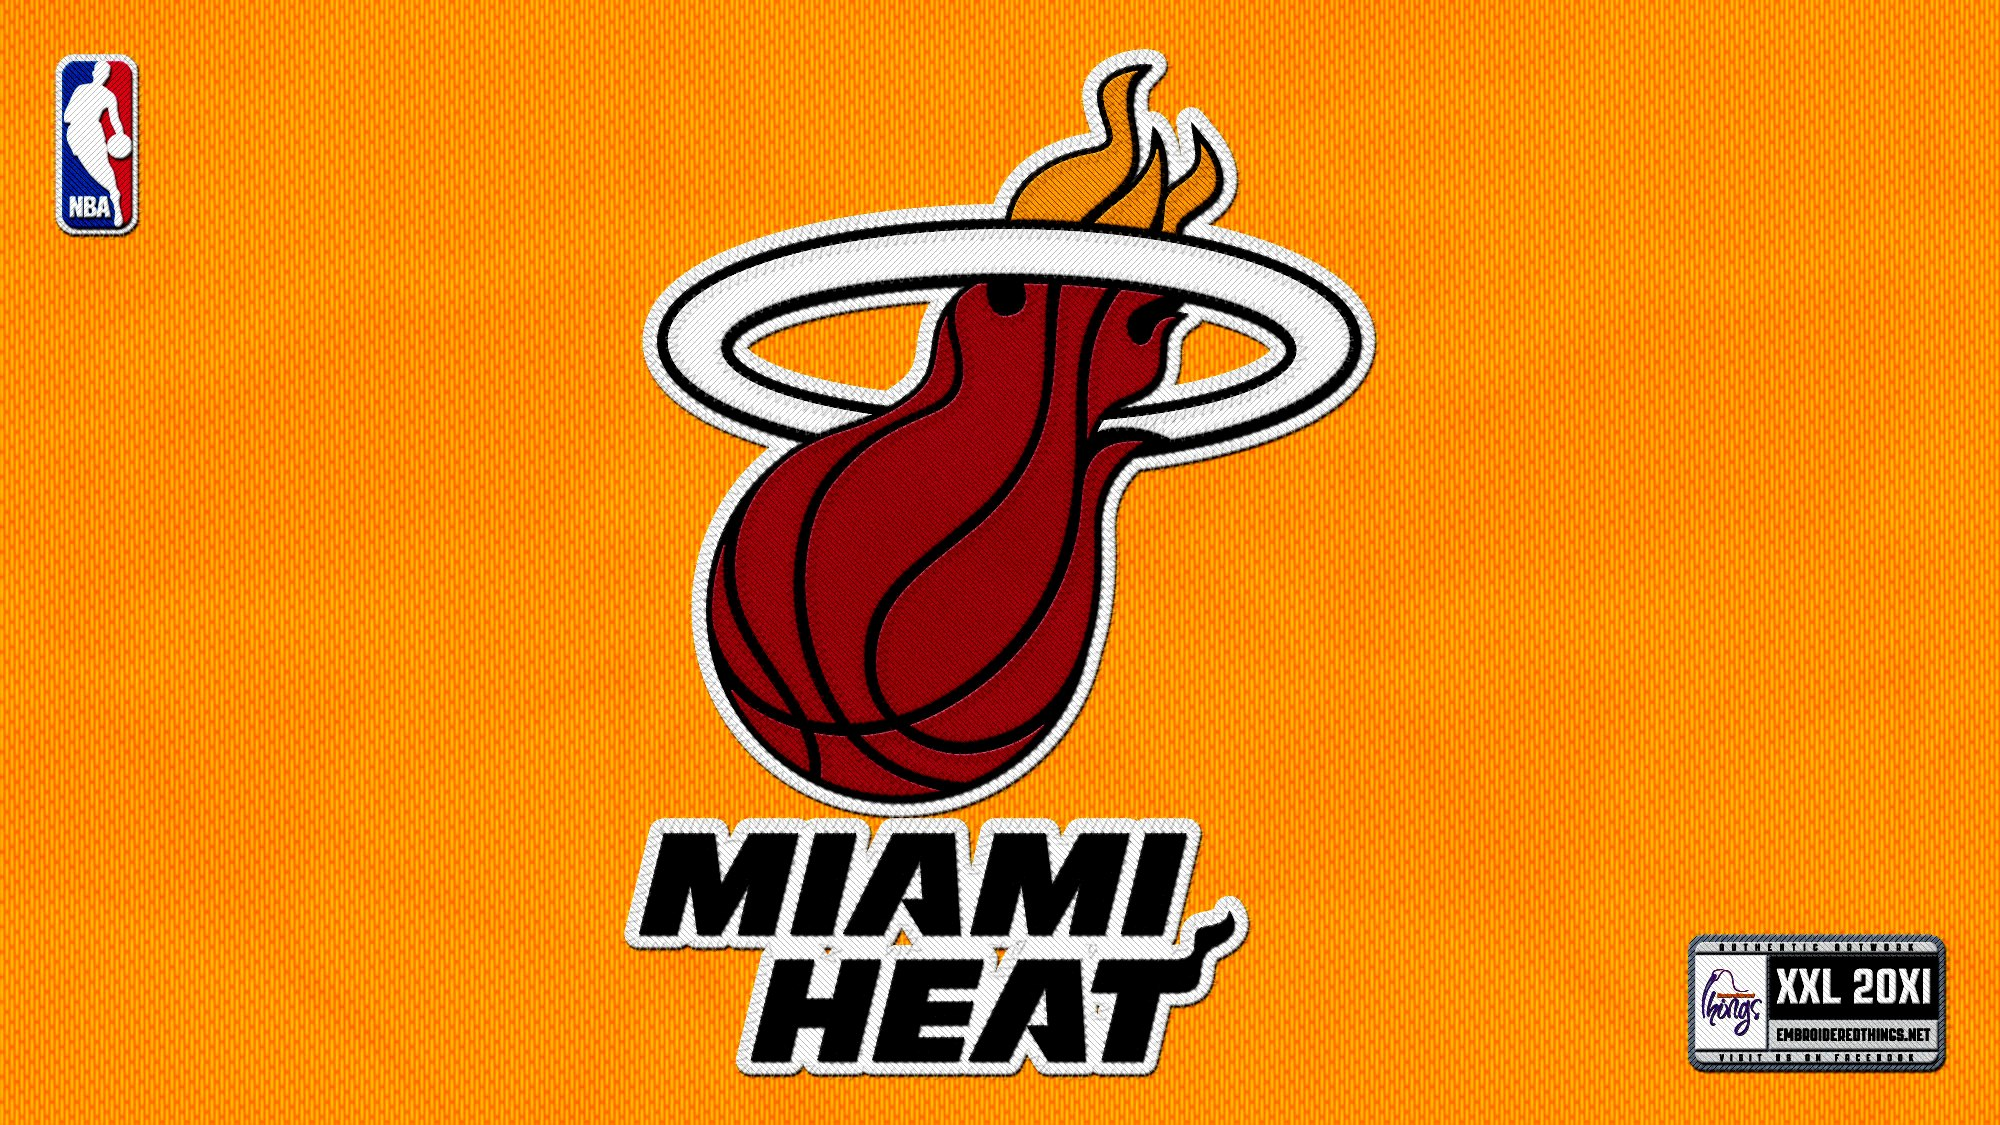 Miami heat full hd wallpaper and background image - Miami heat wallpaper android download ...